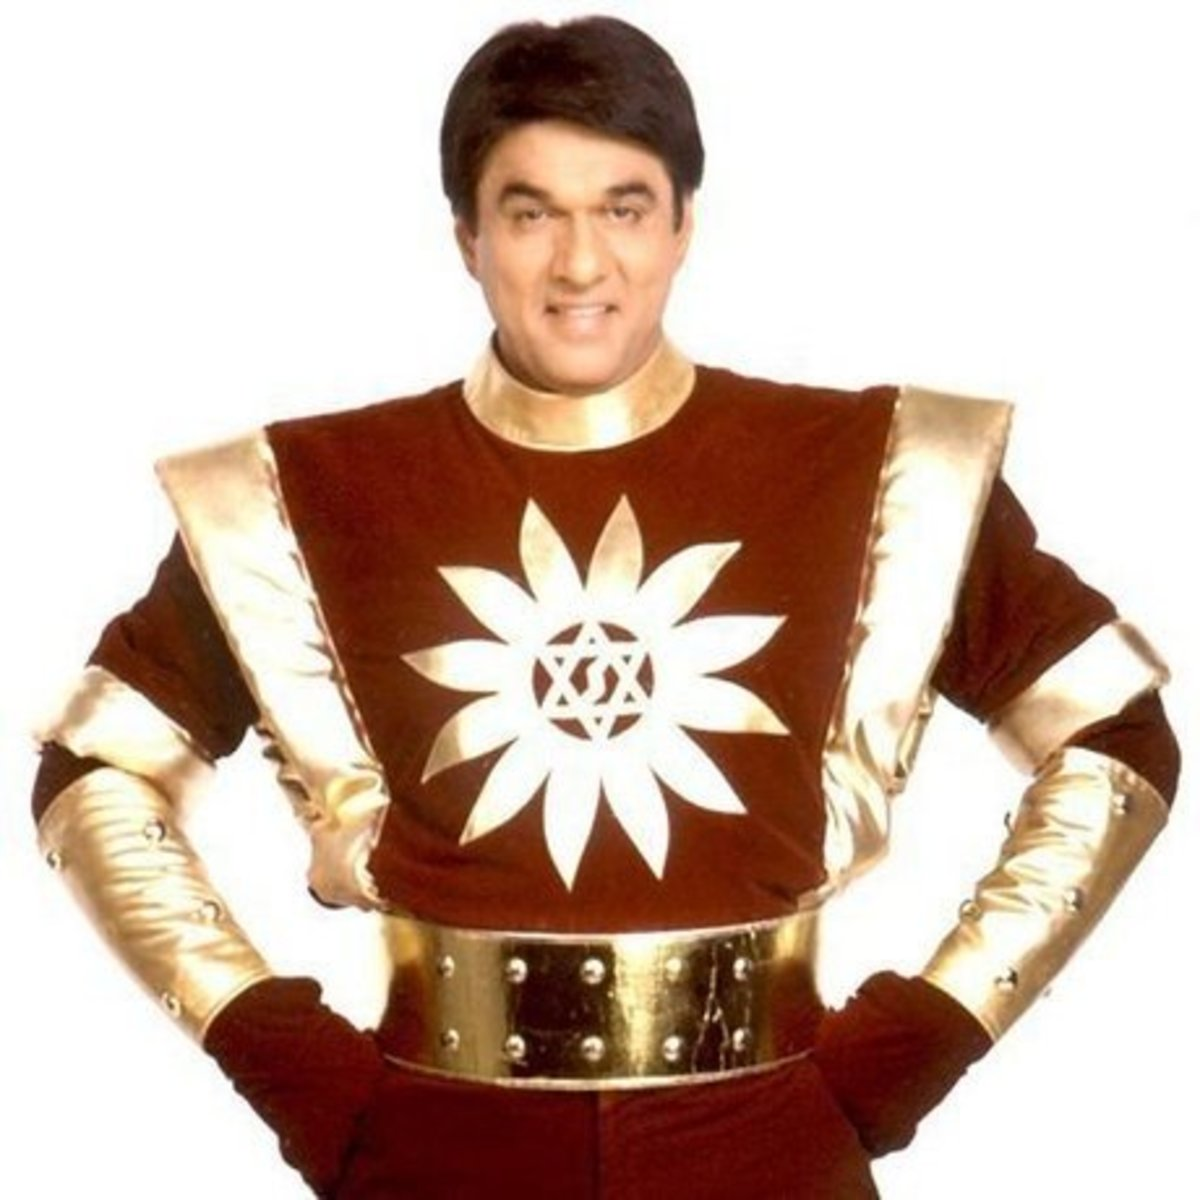 Mukesh Khanna will always be remembered for his iconic role of Shaktimaan